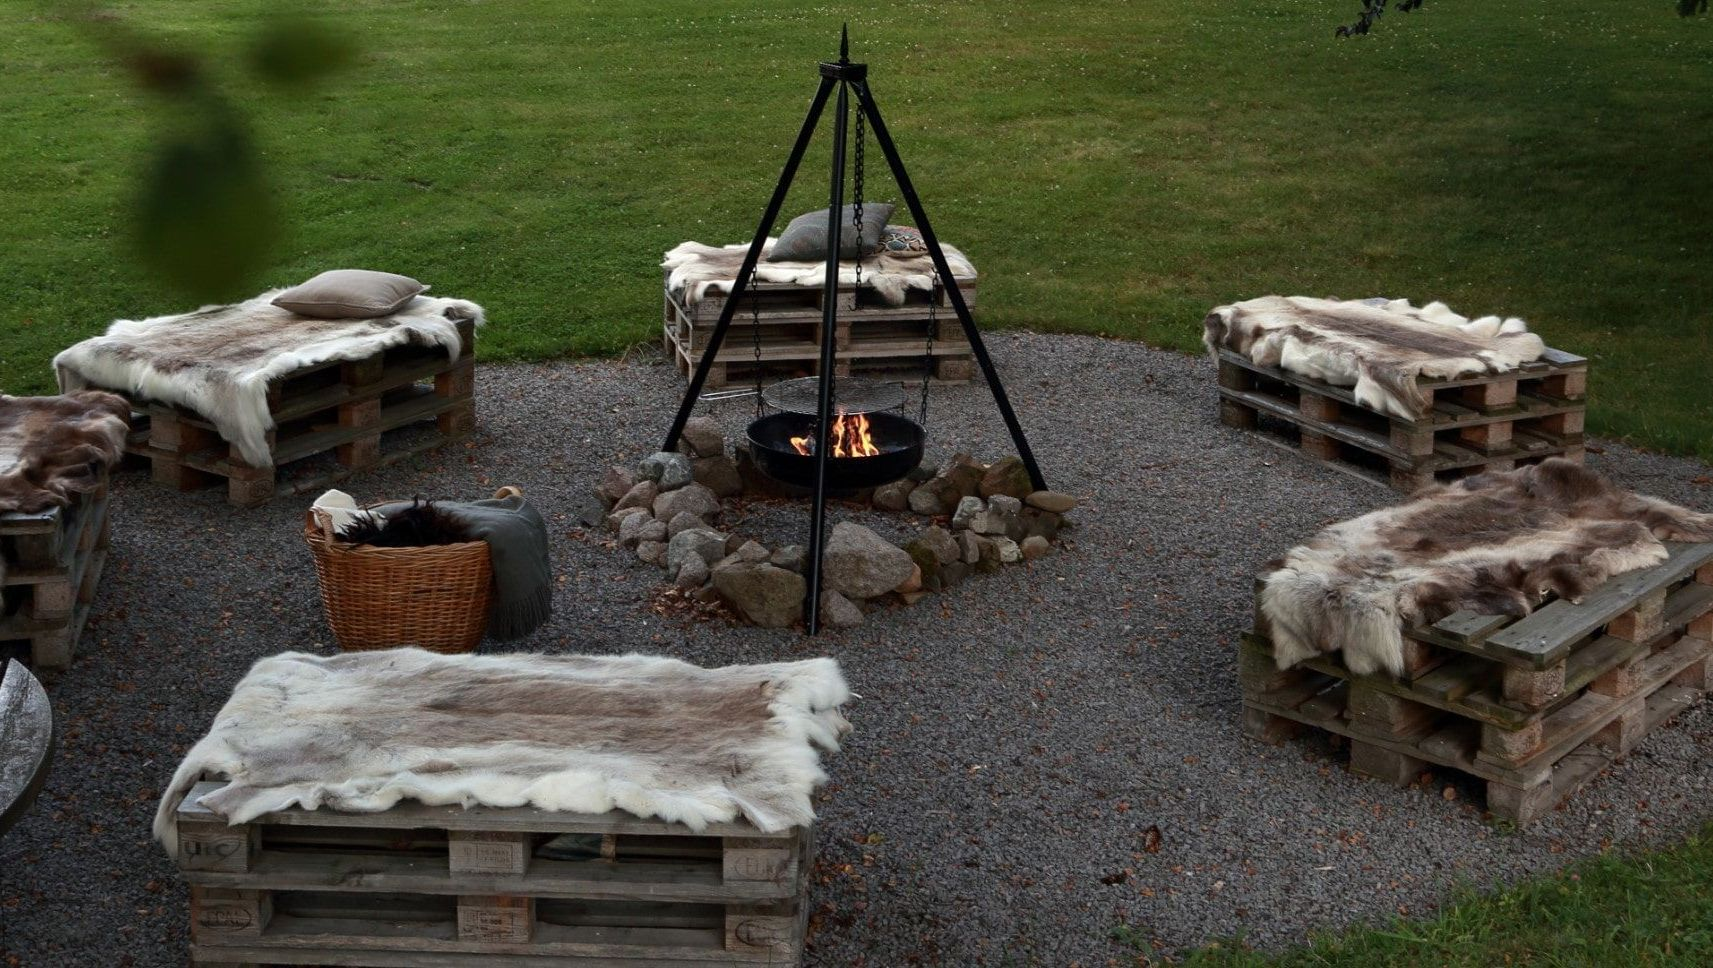 Campfire with seats